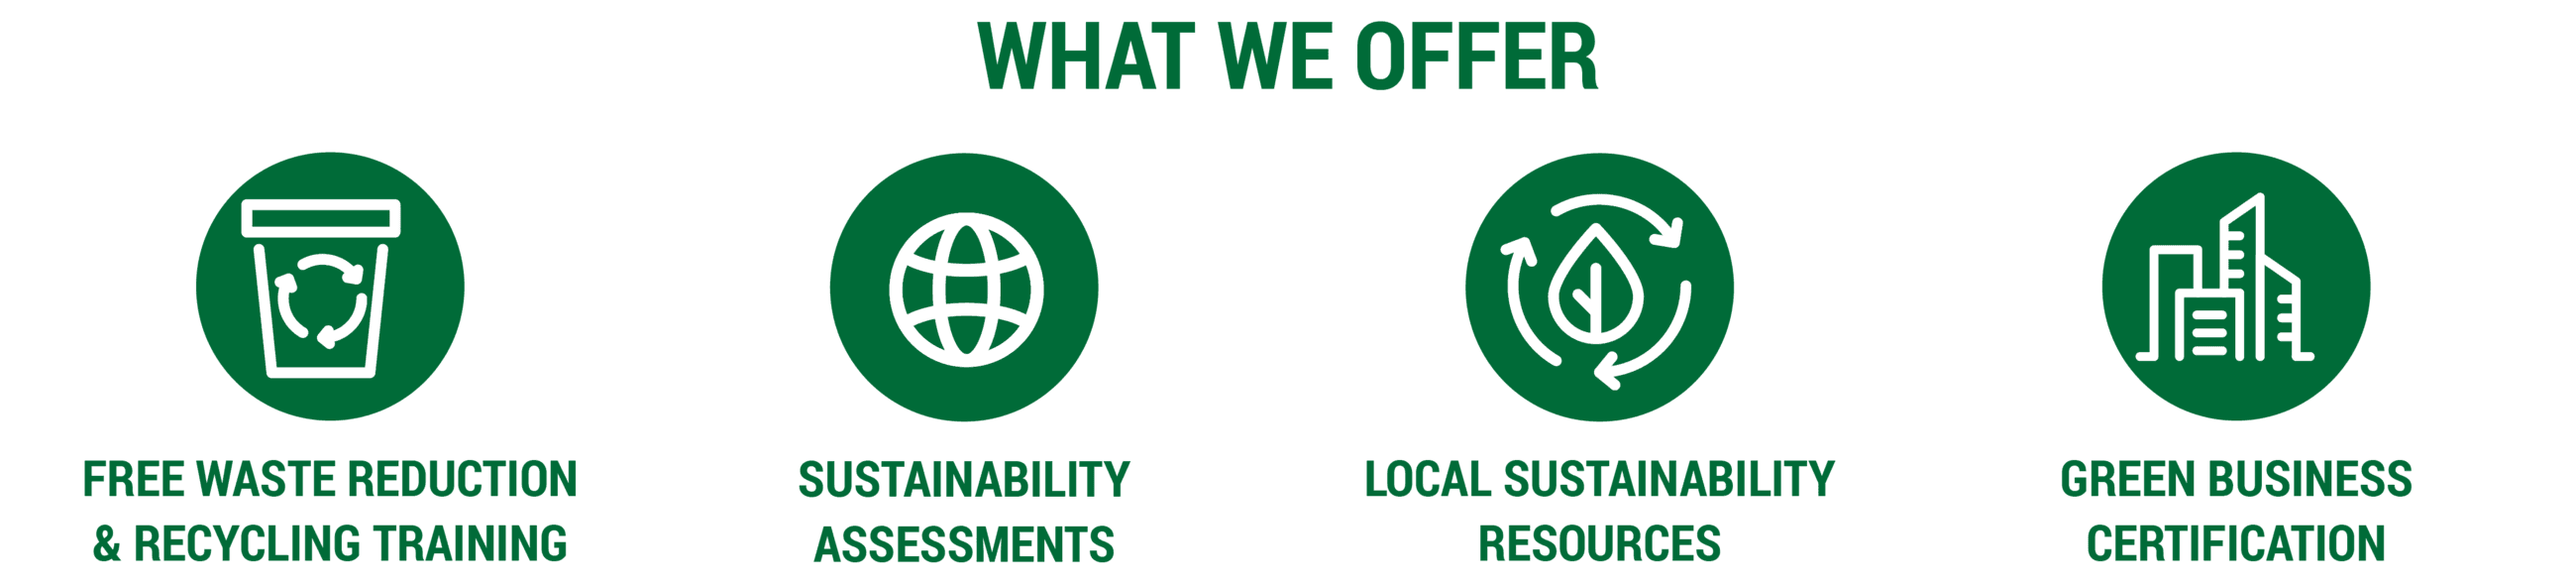 Green Business Program - What We Offer